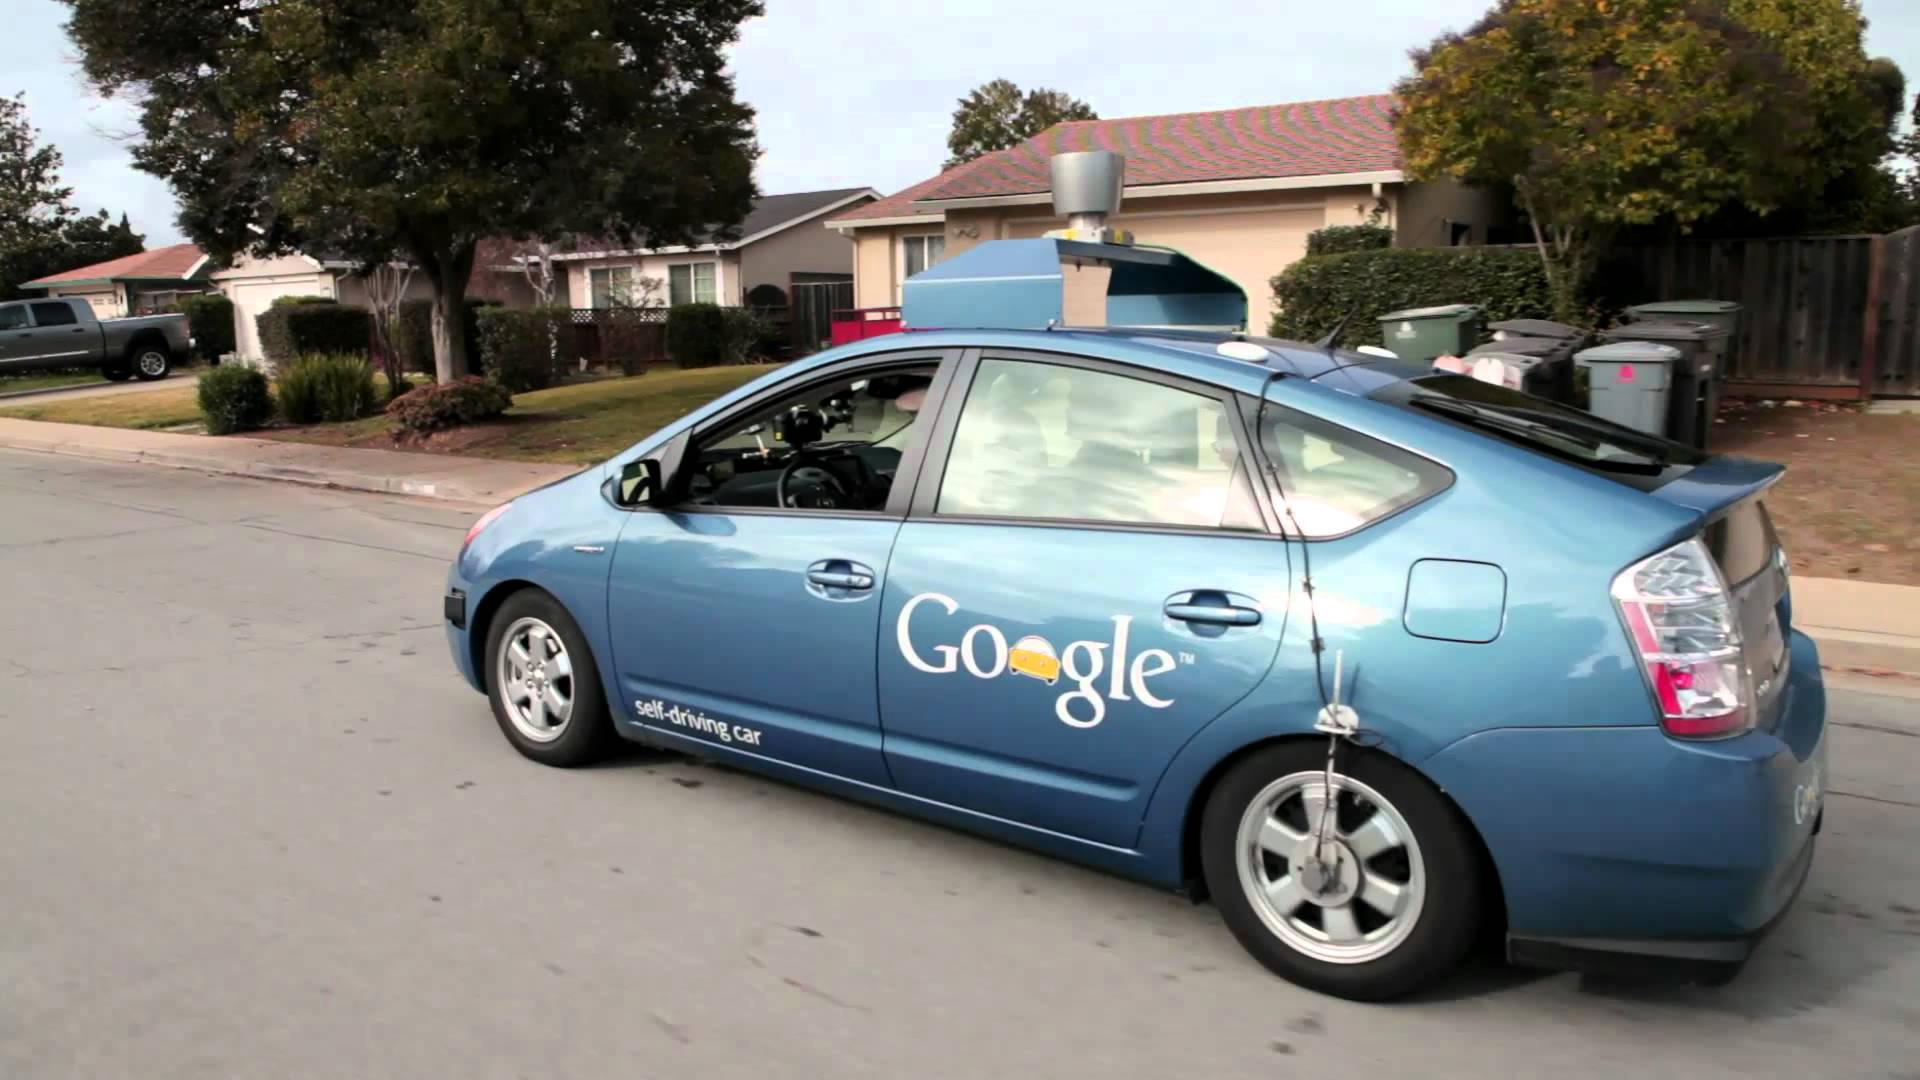 Google confirms it's expanding its self-driving car project to